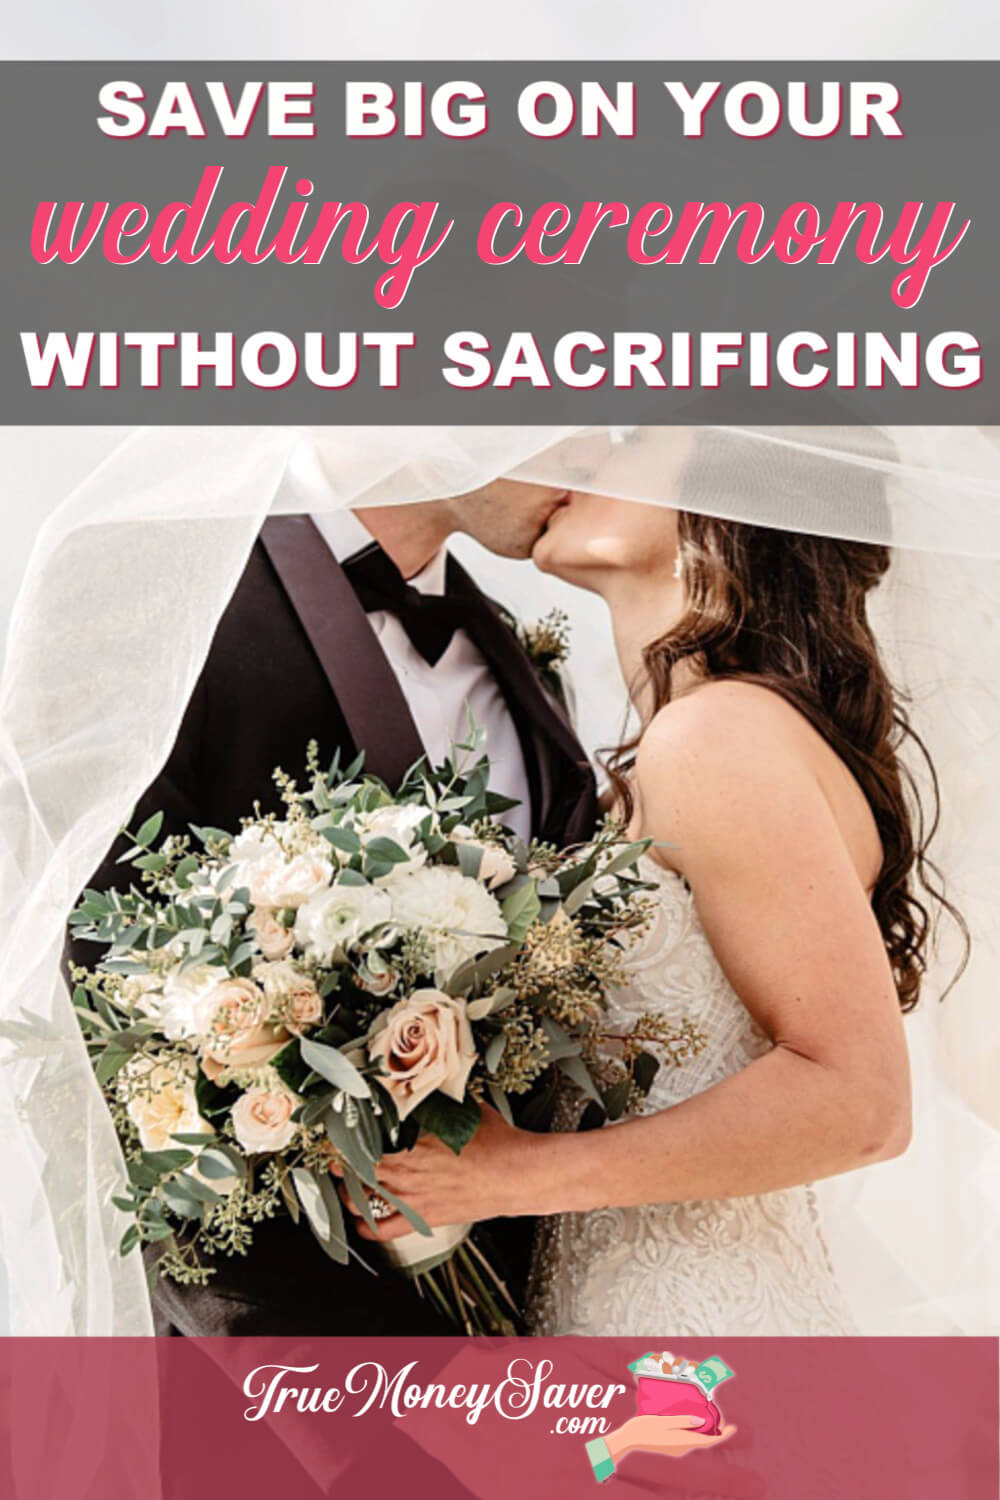 How To Save Big On Your Wedding Ceremony Without Sacrificing